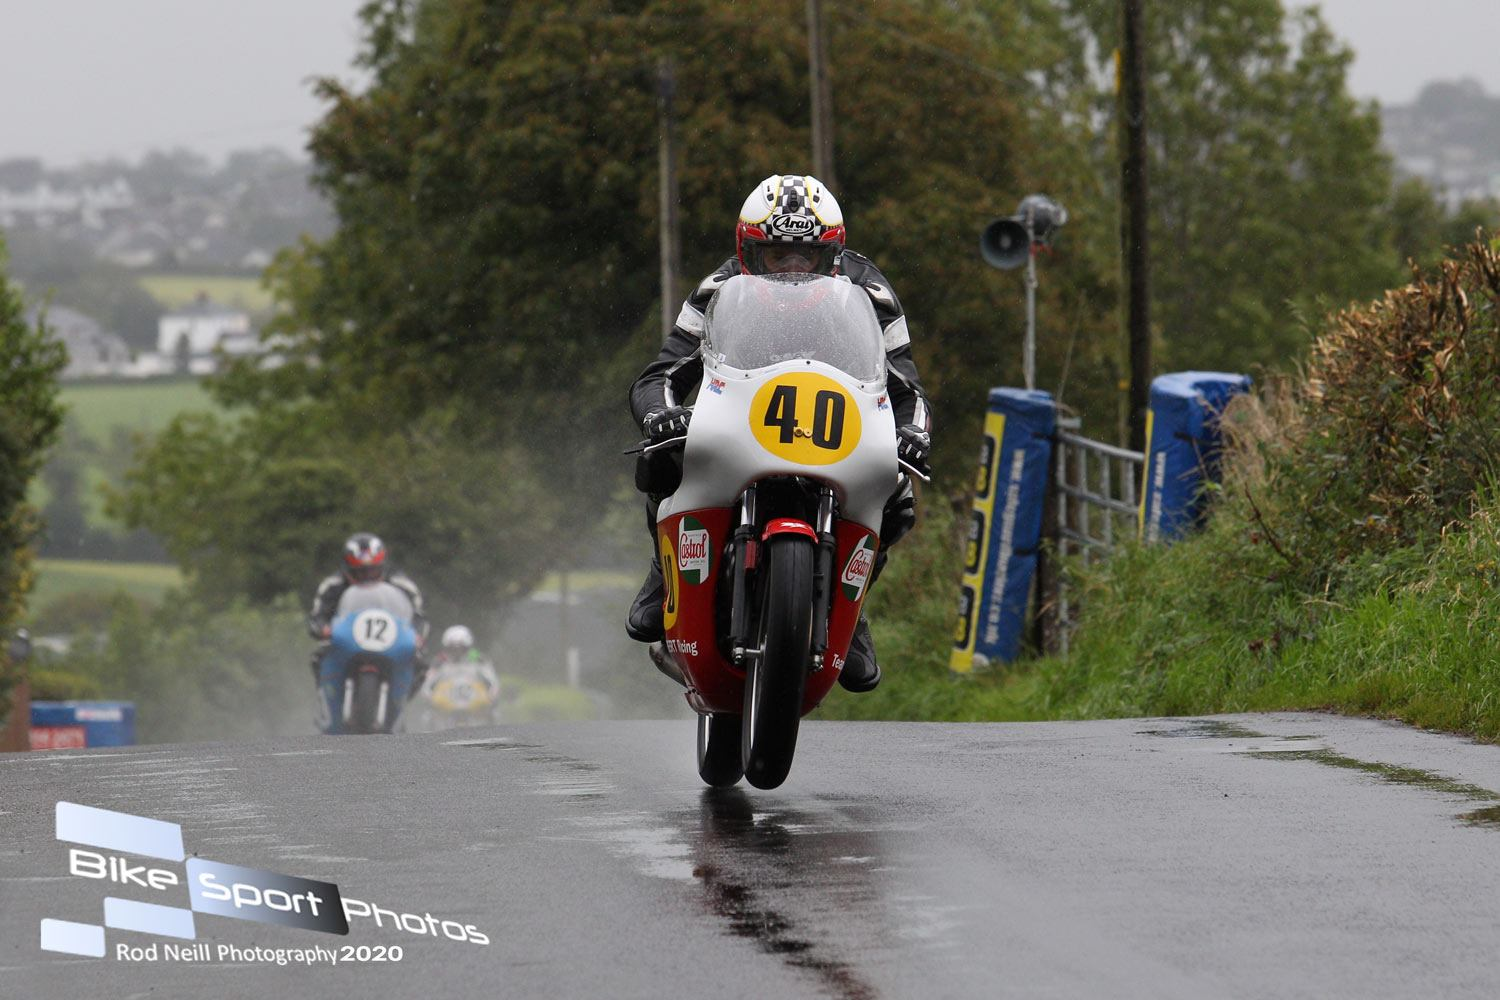 KDM Hire Cookstown 100: Chapeau Cookstown, Irish Road Racing Back In Style